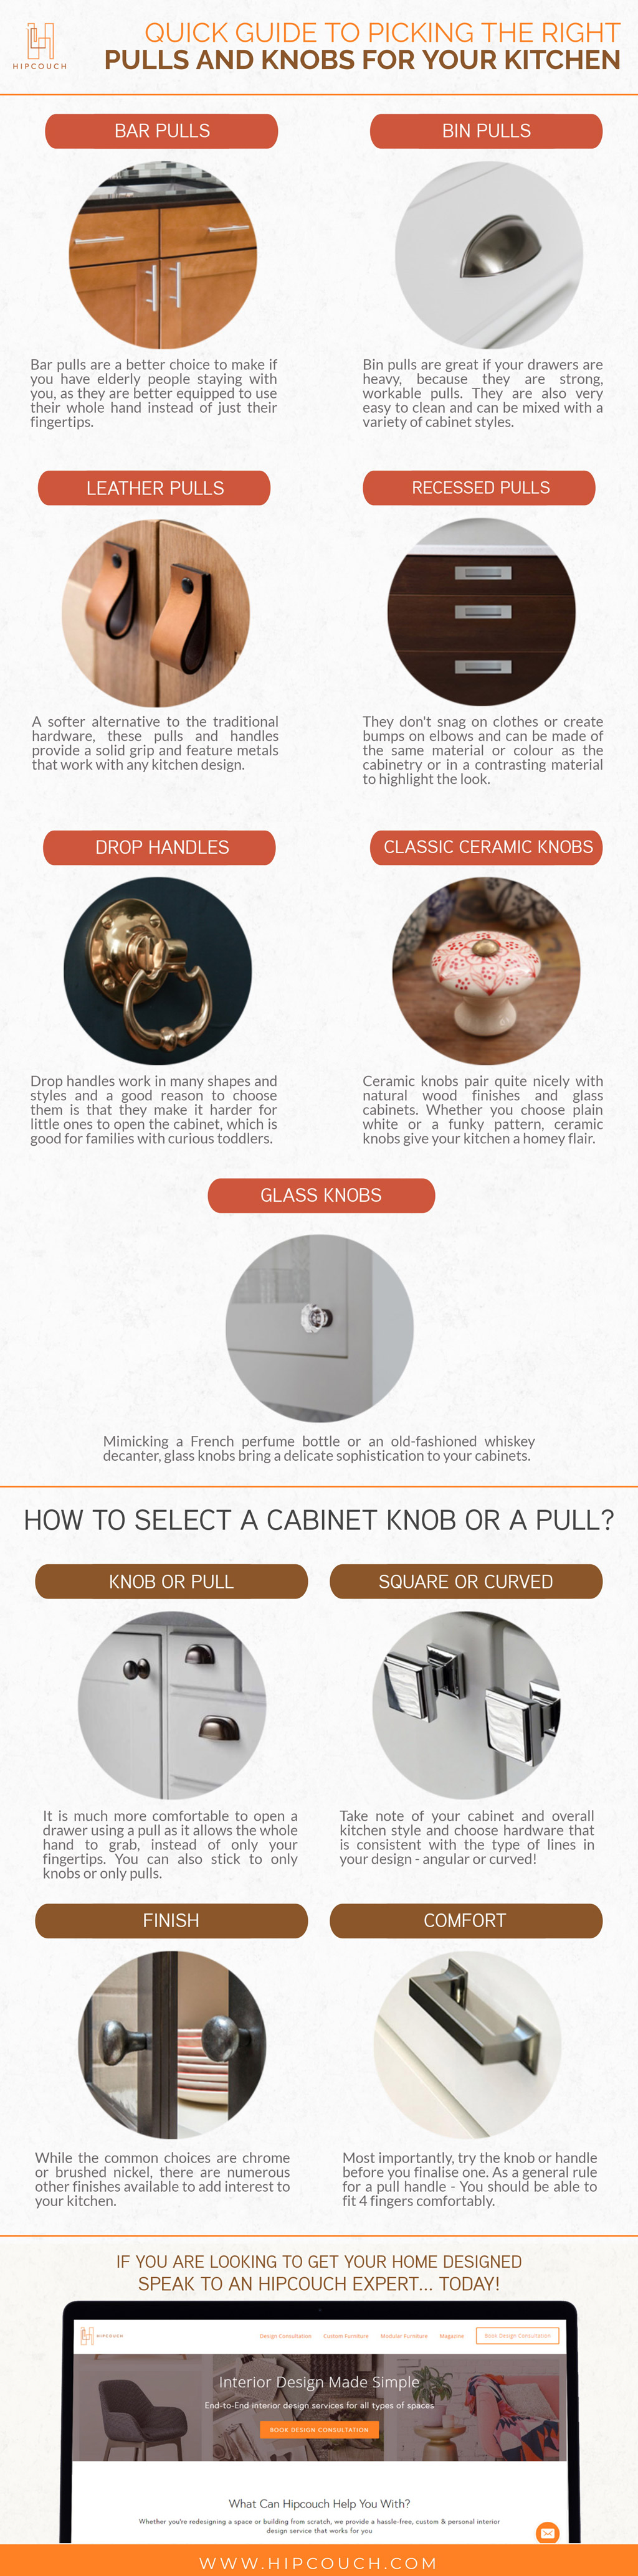 Your Guide To Getting The Pulls and Knobs For Your Kitchen Cabinetry Right!